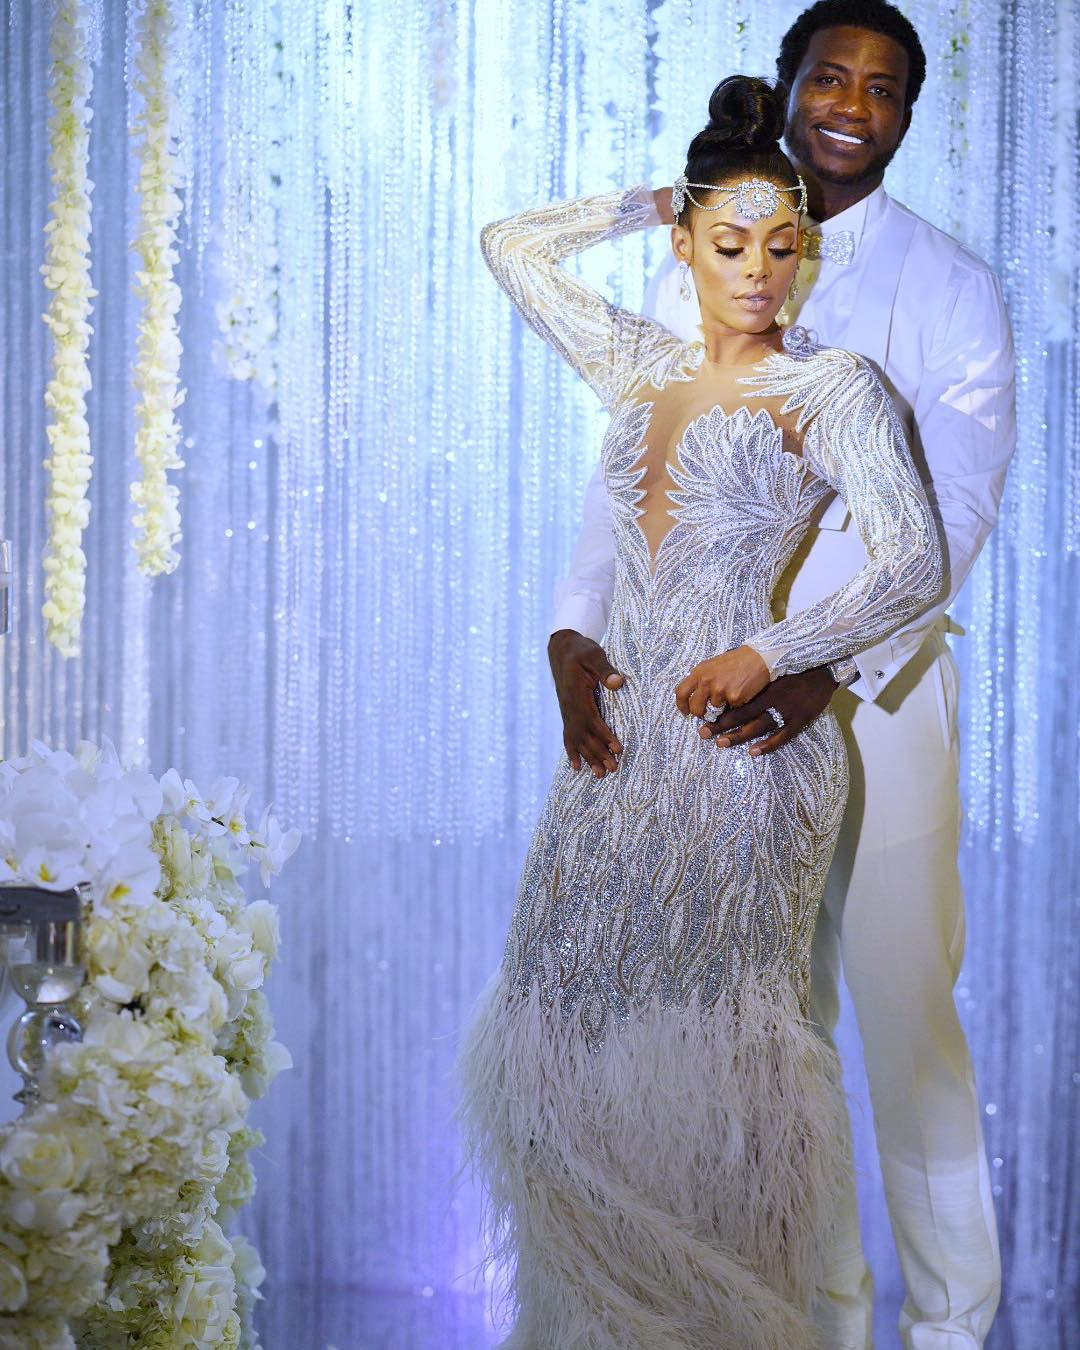 Gucci Mane and Keyshia Ka'oir's Wedding - OLORISUPERGAL